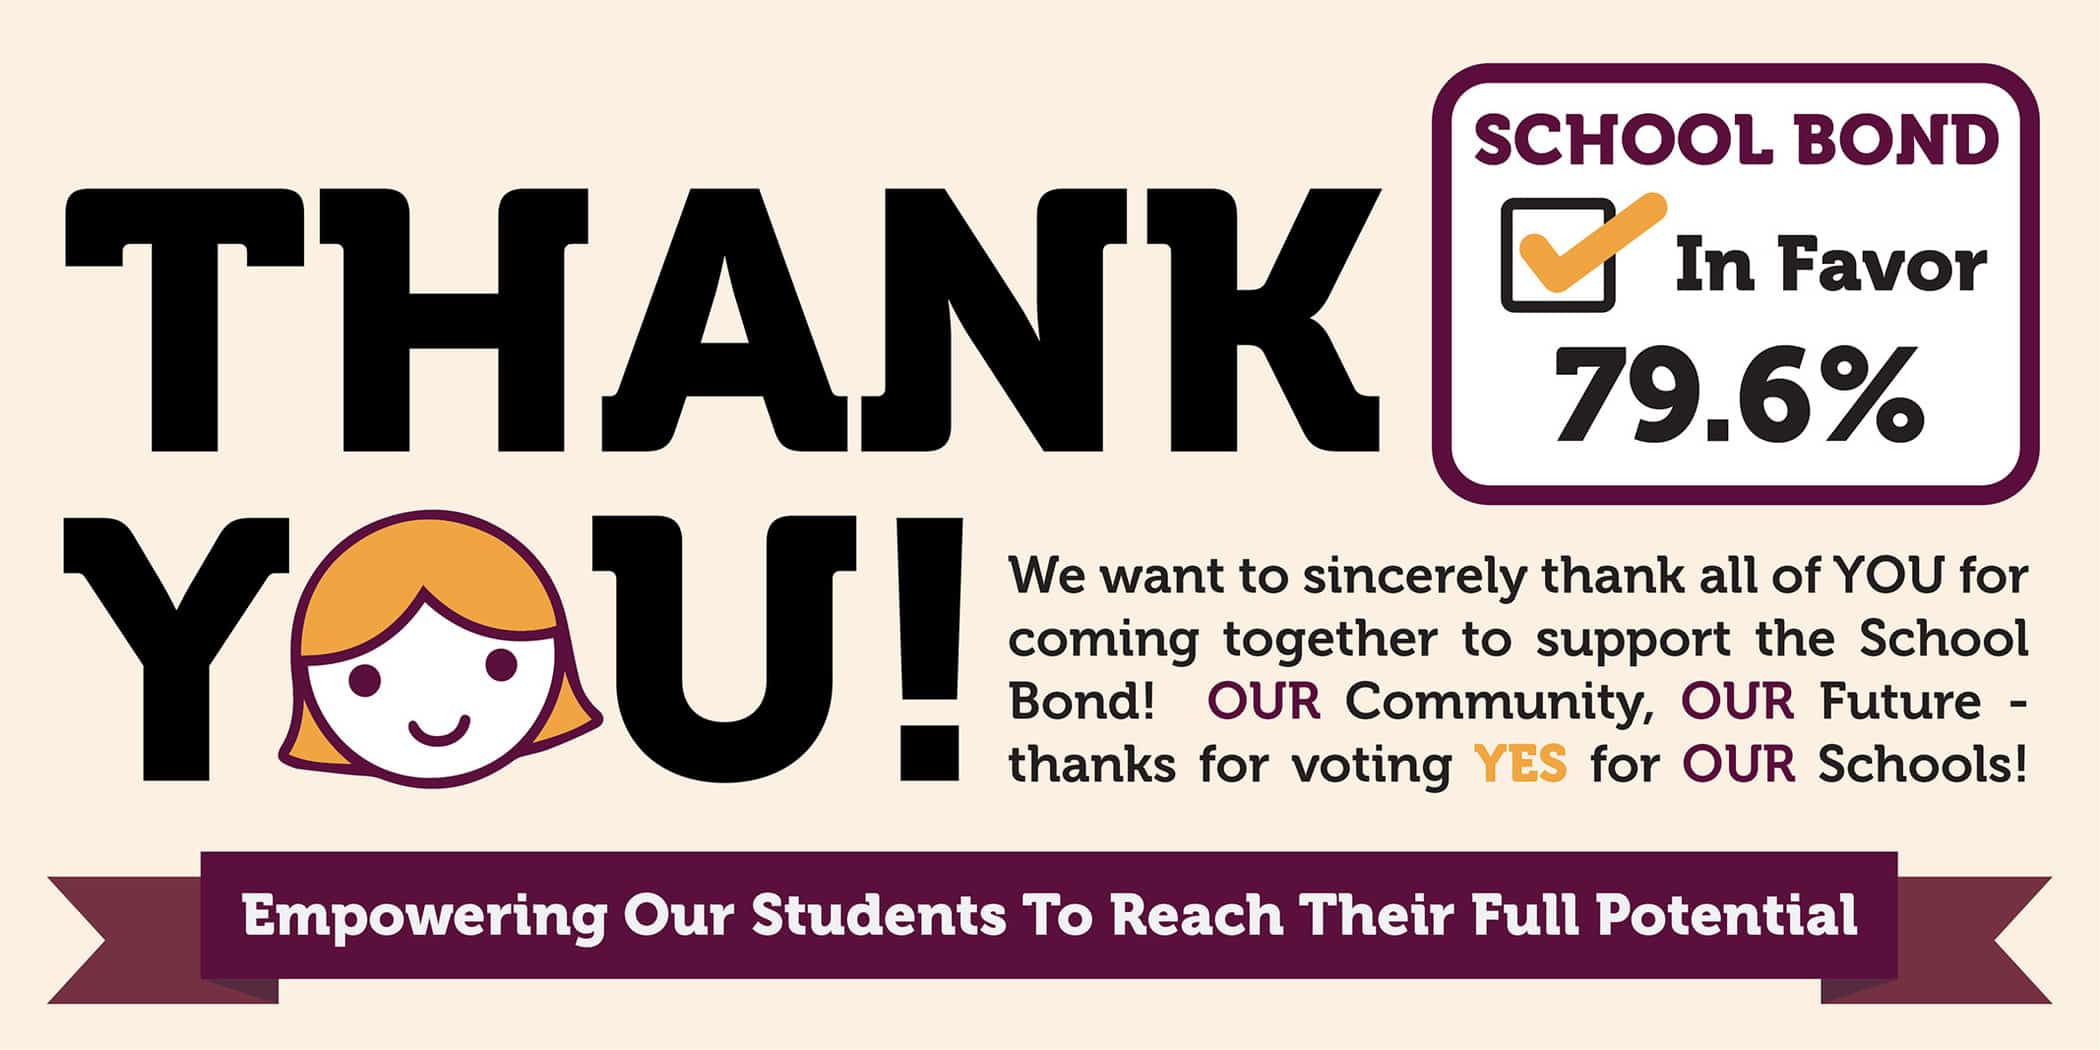 thank you, the bond vote passed